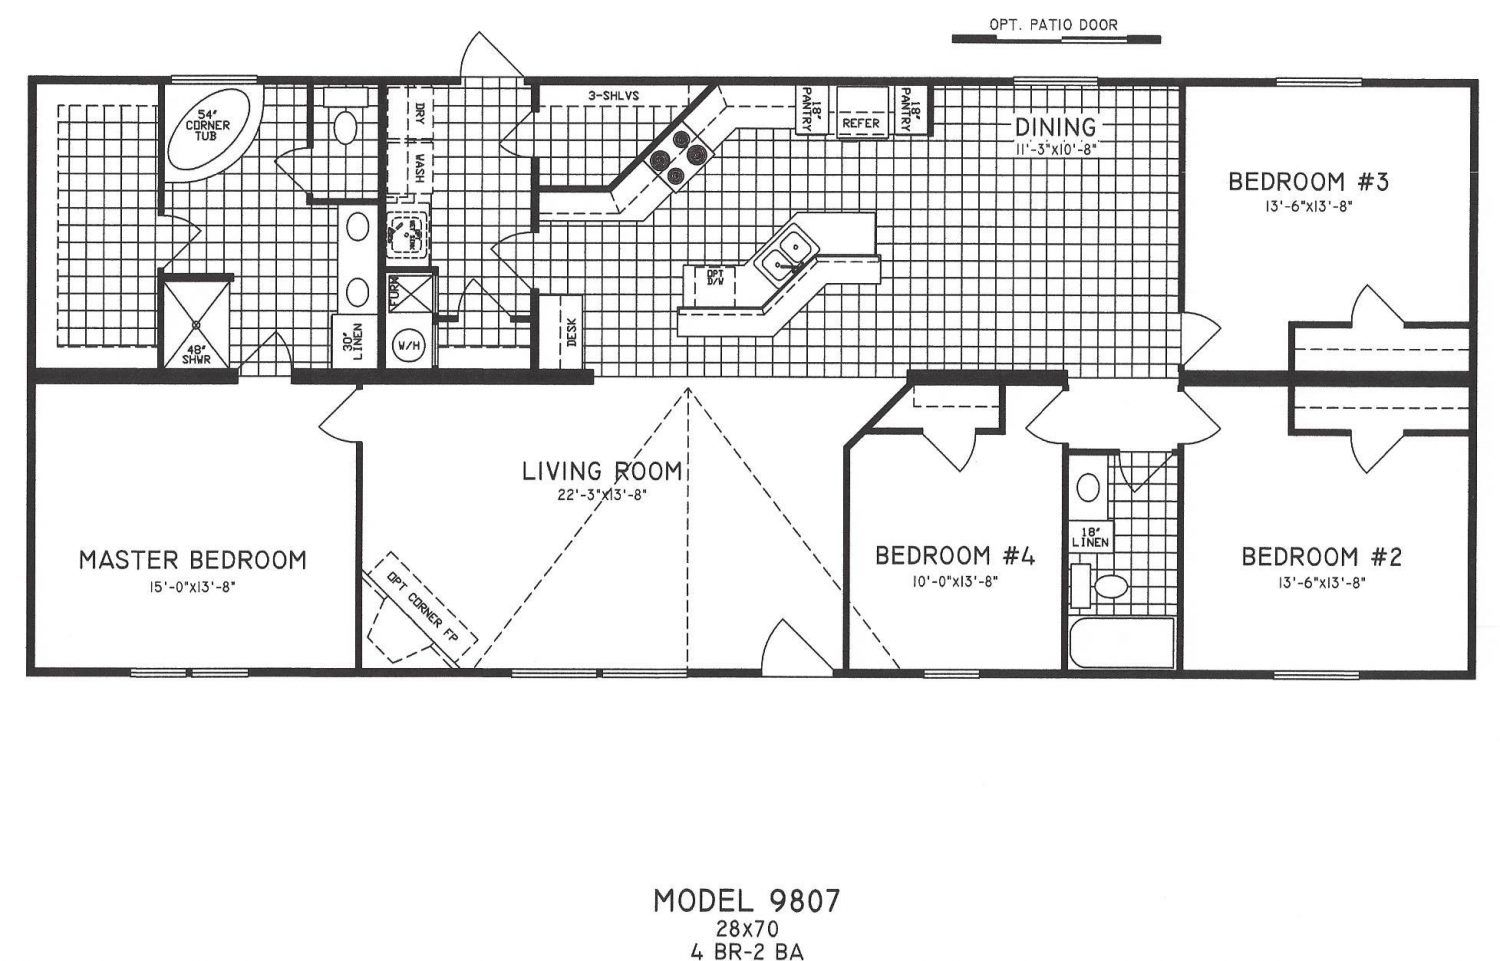 Bedroom mobile home floor plans also rh br pinterest